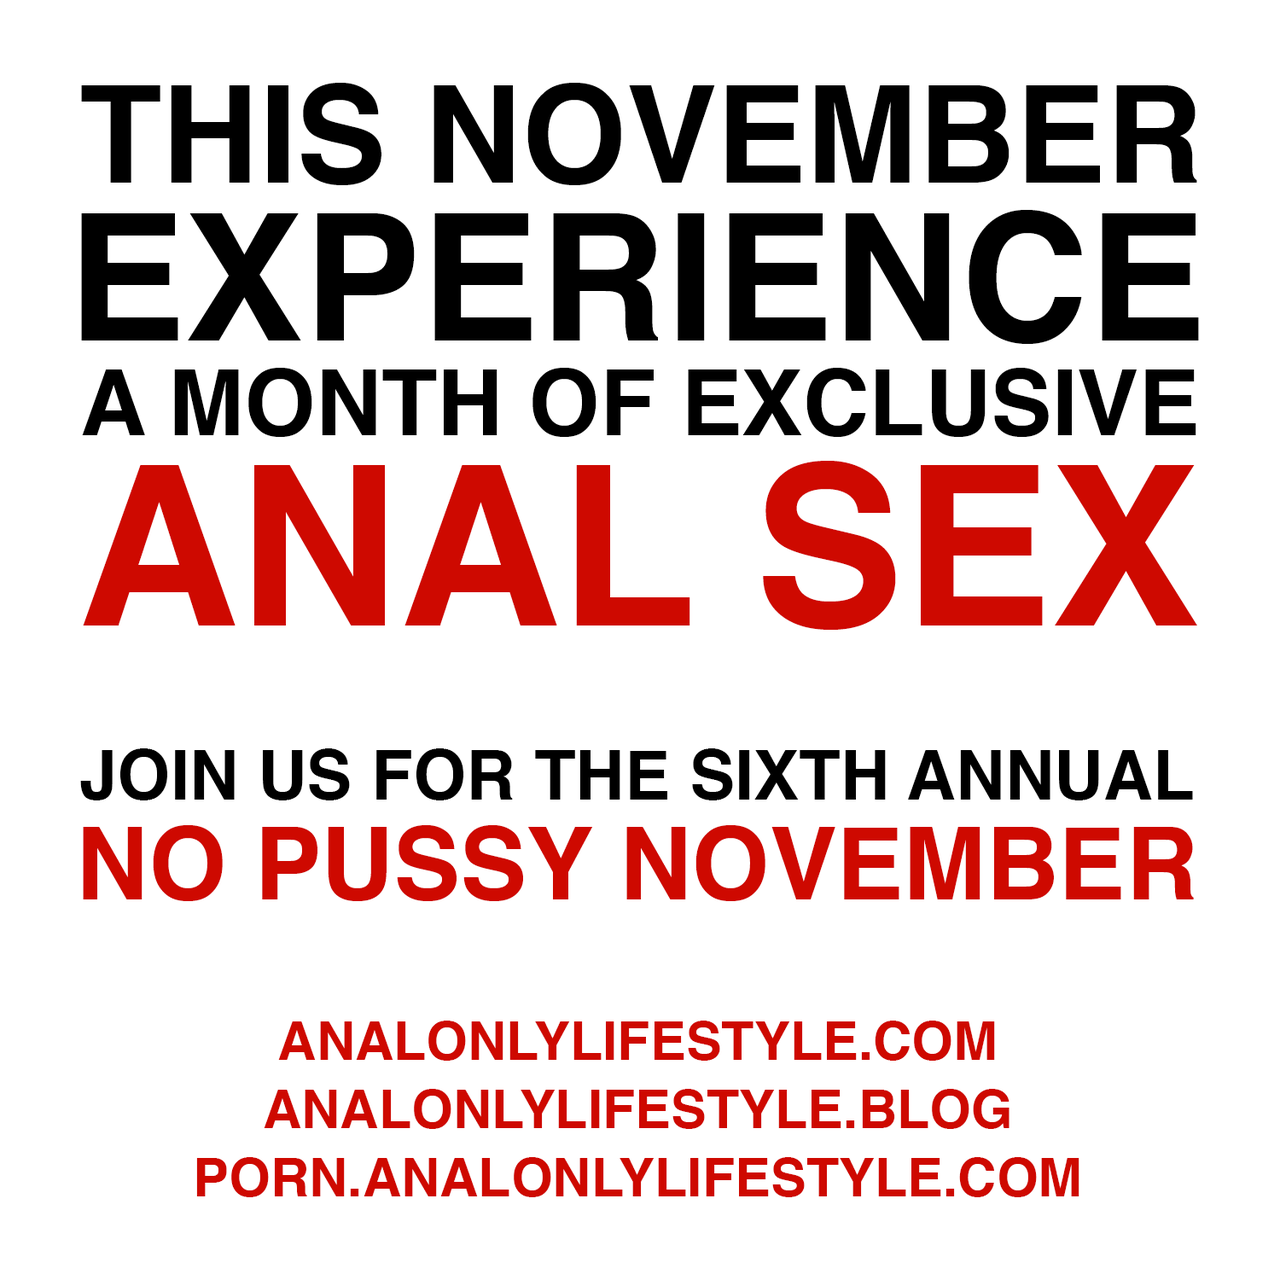 This November Experience A Month of Exclusive Anal Sex - Join Us For The Sixth Annual No Pussy November